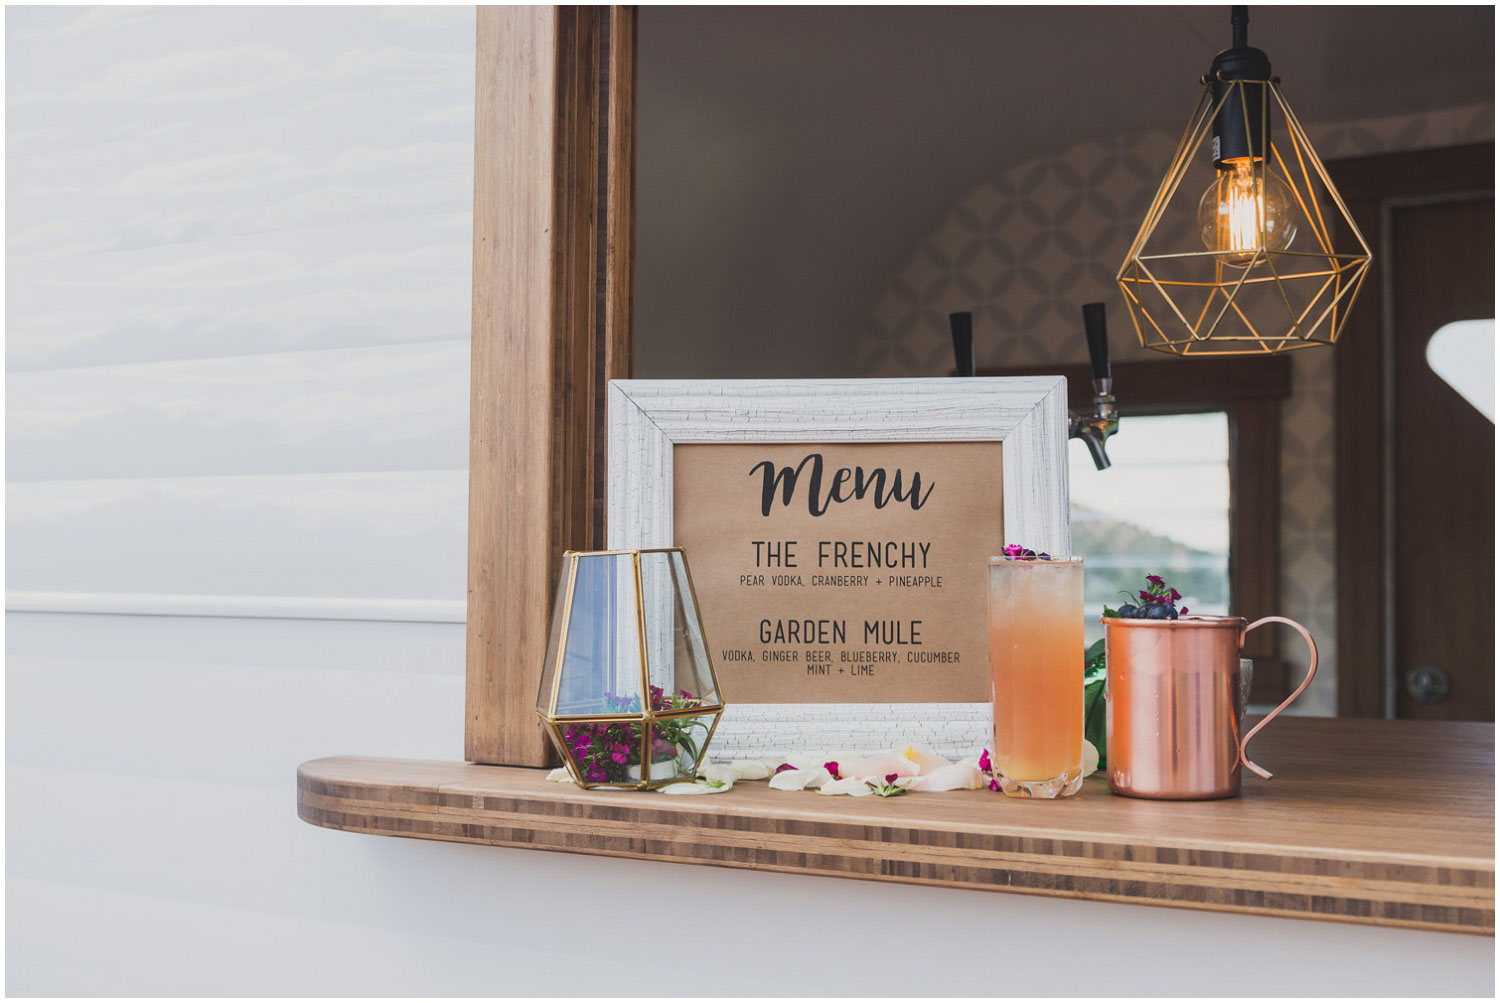 signature cocktail inspiration garden mule and the frenchy by swig rig